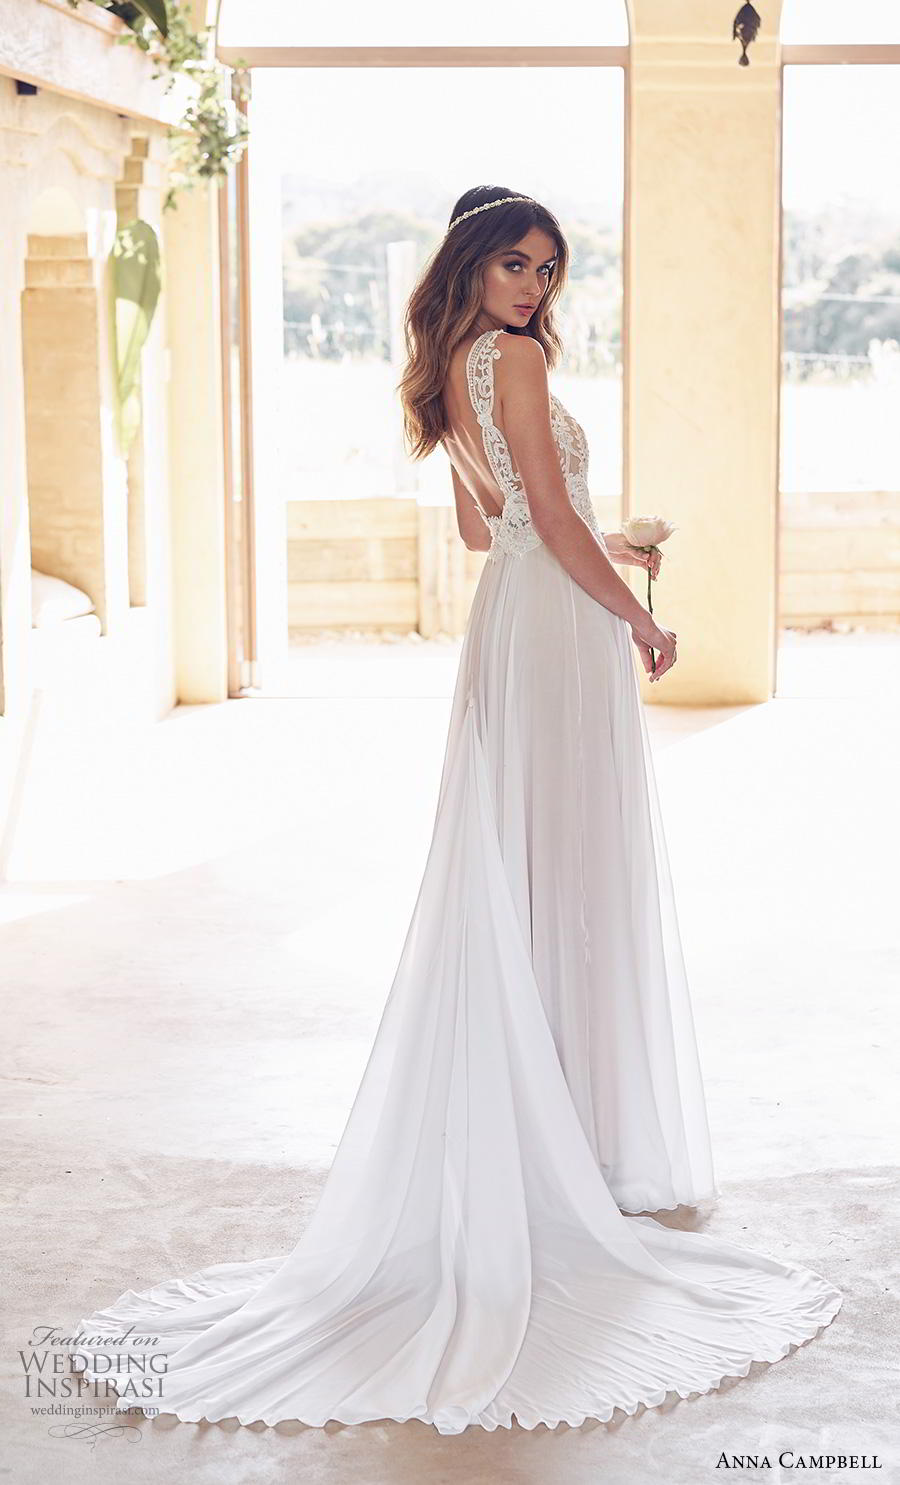 anna campbell 2019 bridal sleeveless with strap v neck heavily embellished bodice romantic soft a line wedding dress backless scoop back chapel train (15) bv